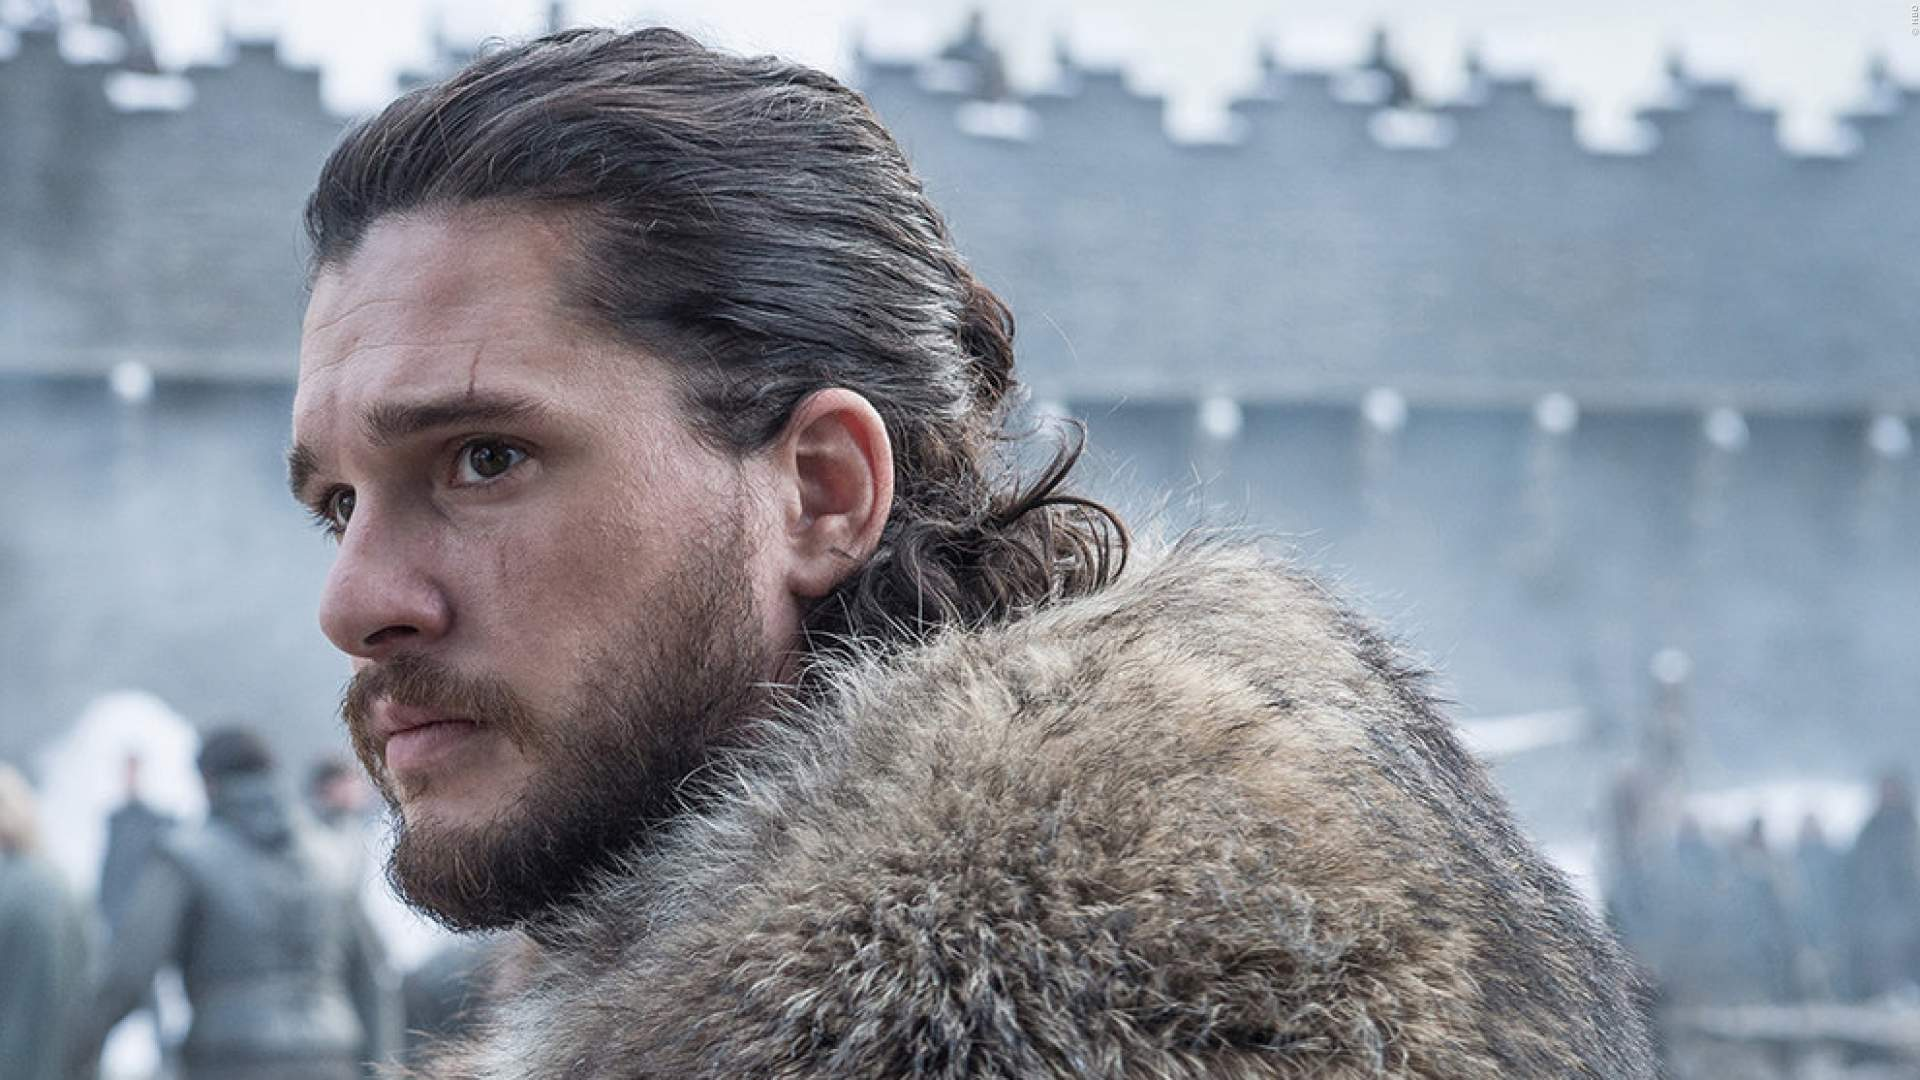 GAME OF THRONES: Das echte Alter der GoT-Figuren - John Schnee 15?